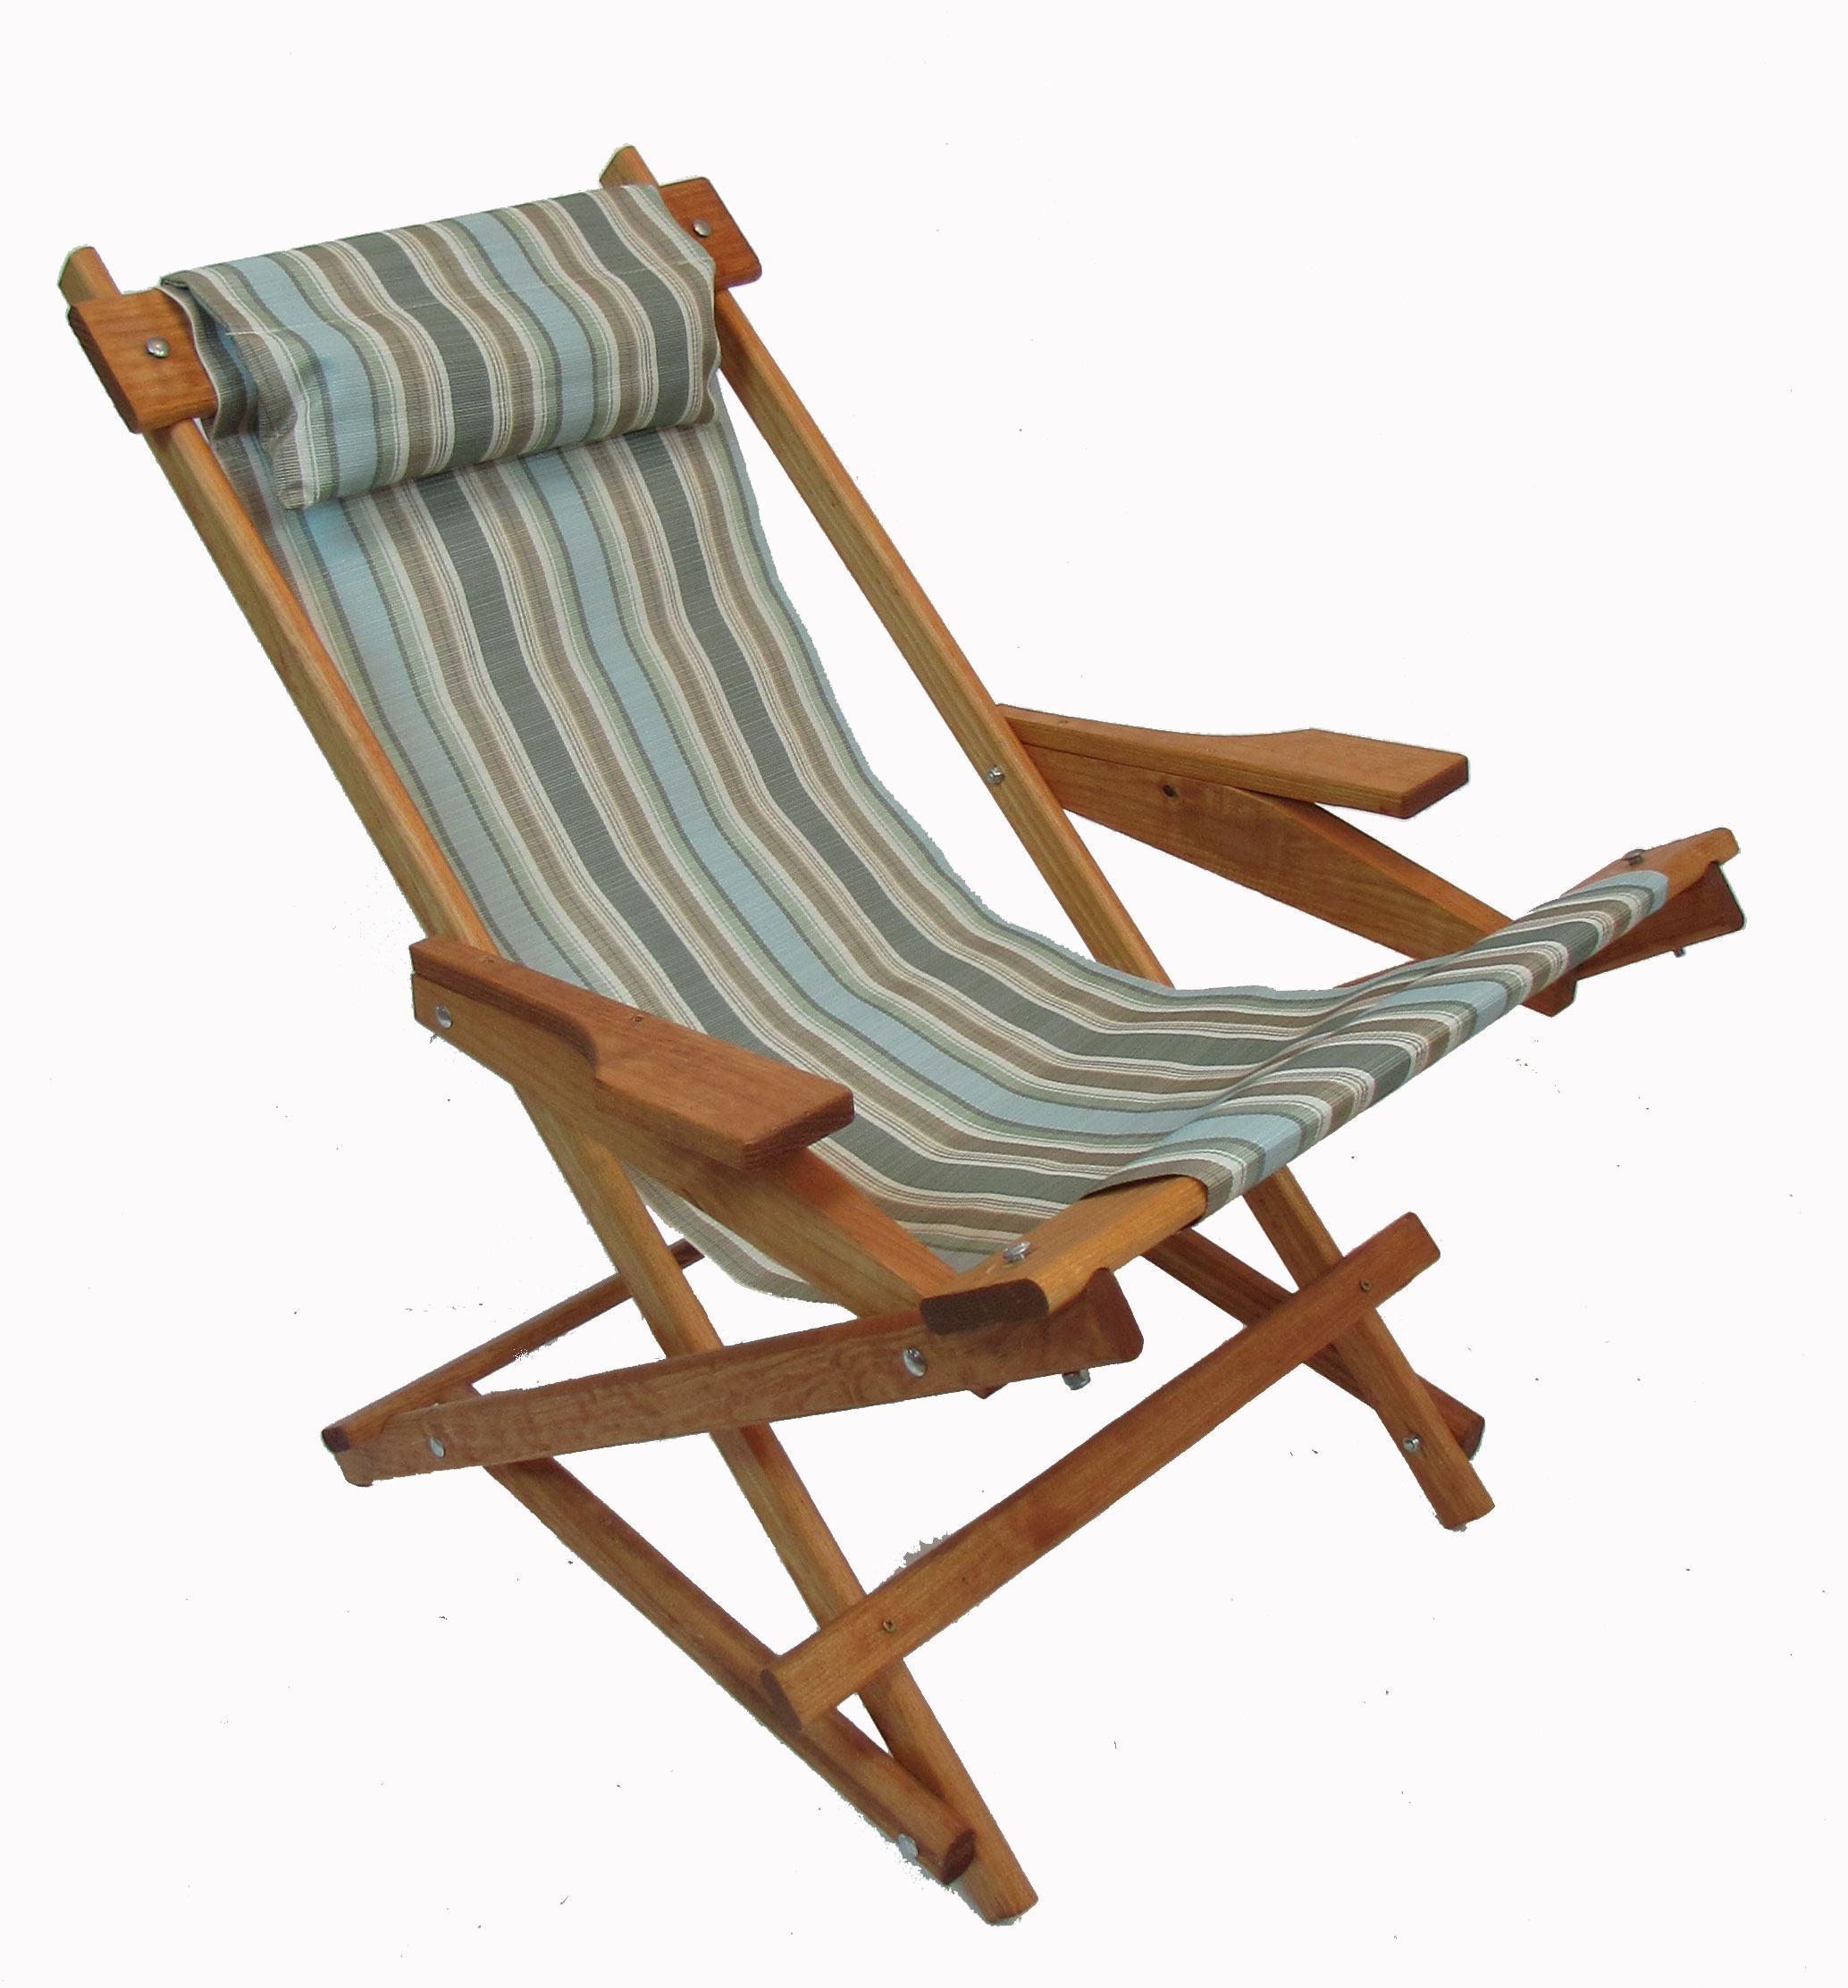 Folding Rocking Chair In A Bag Garden Chairs Folding Garden Lounger Everywherechair